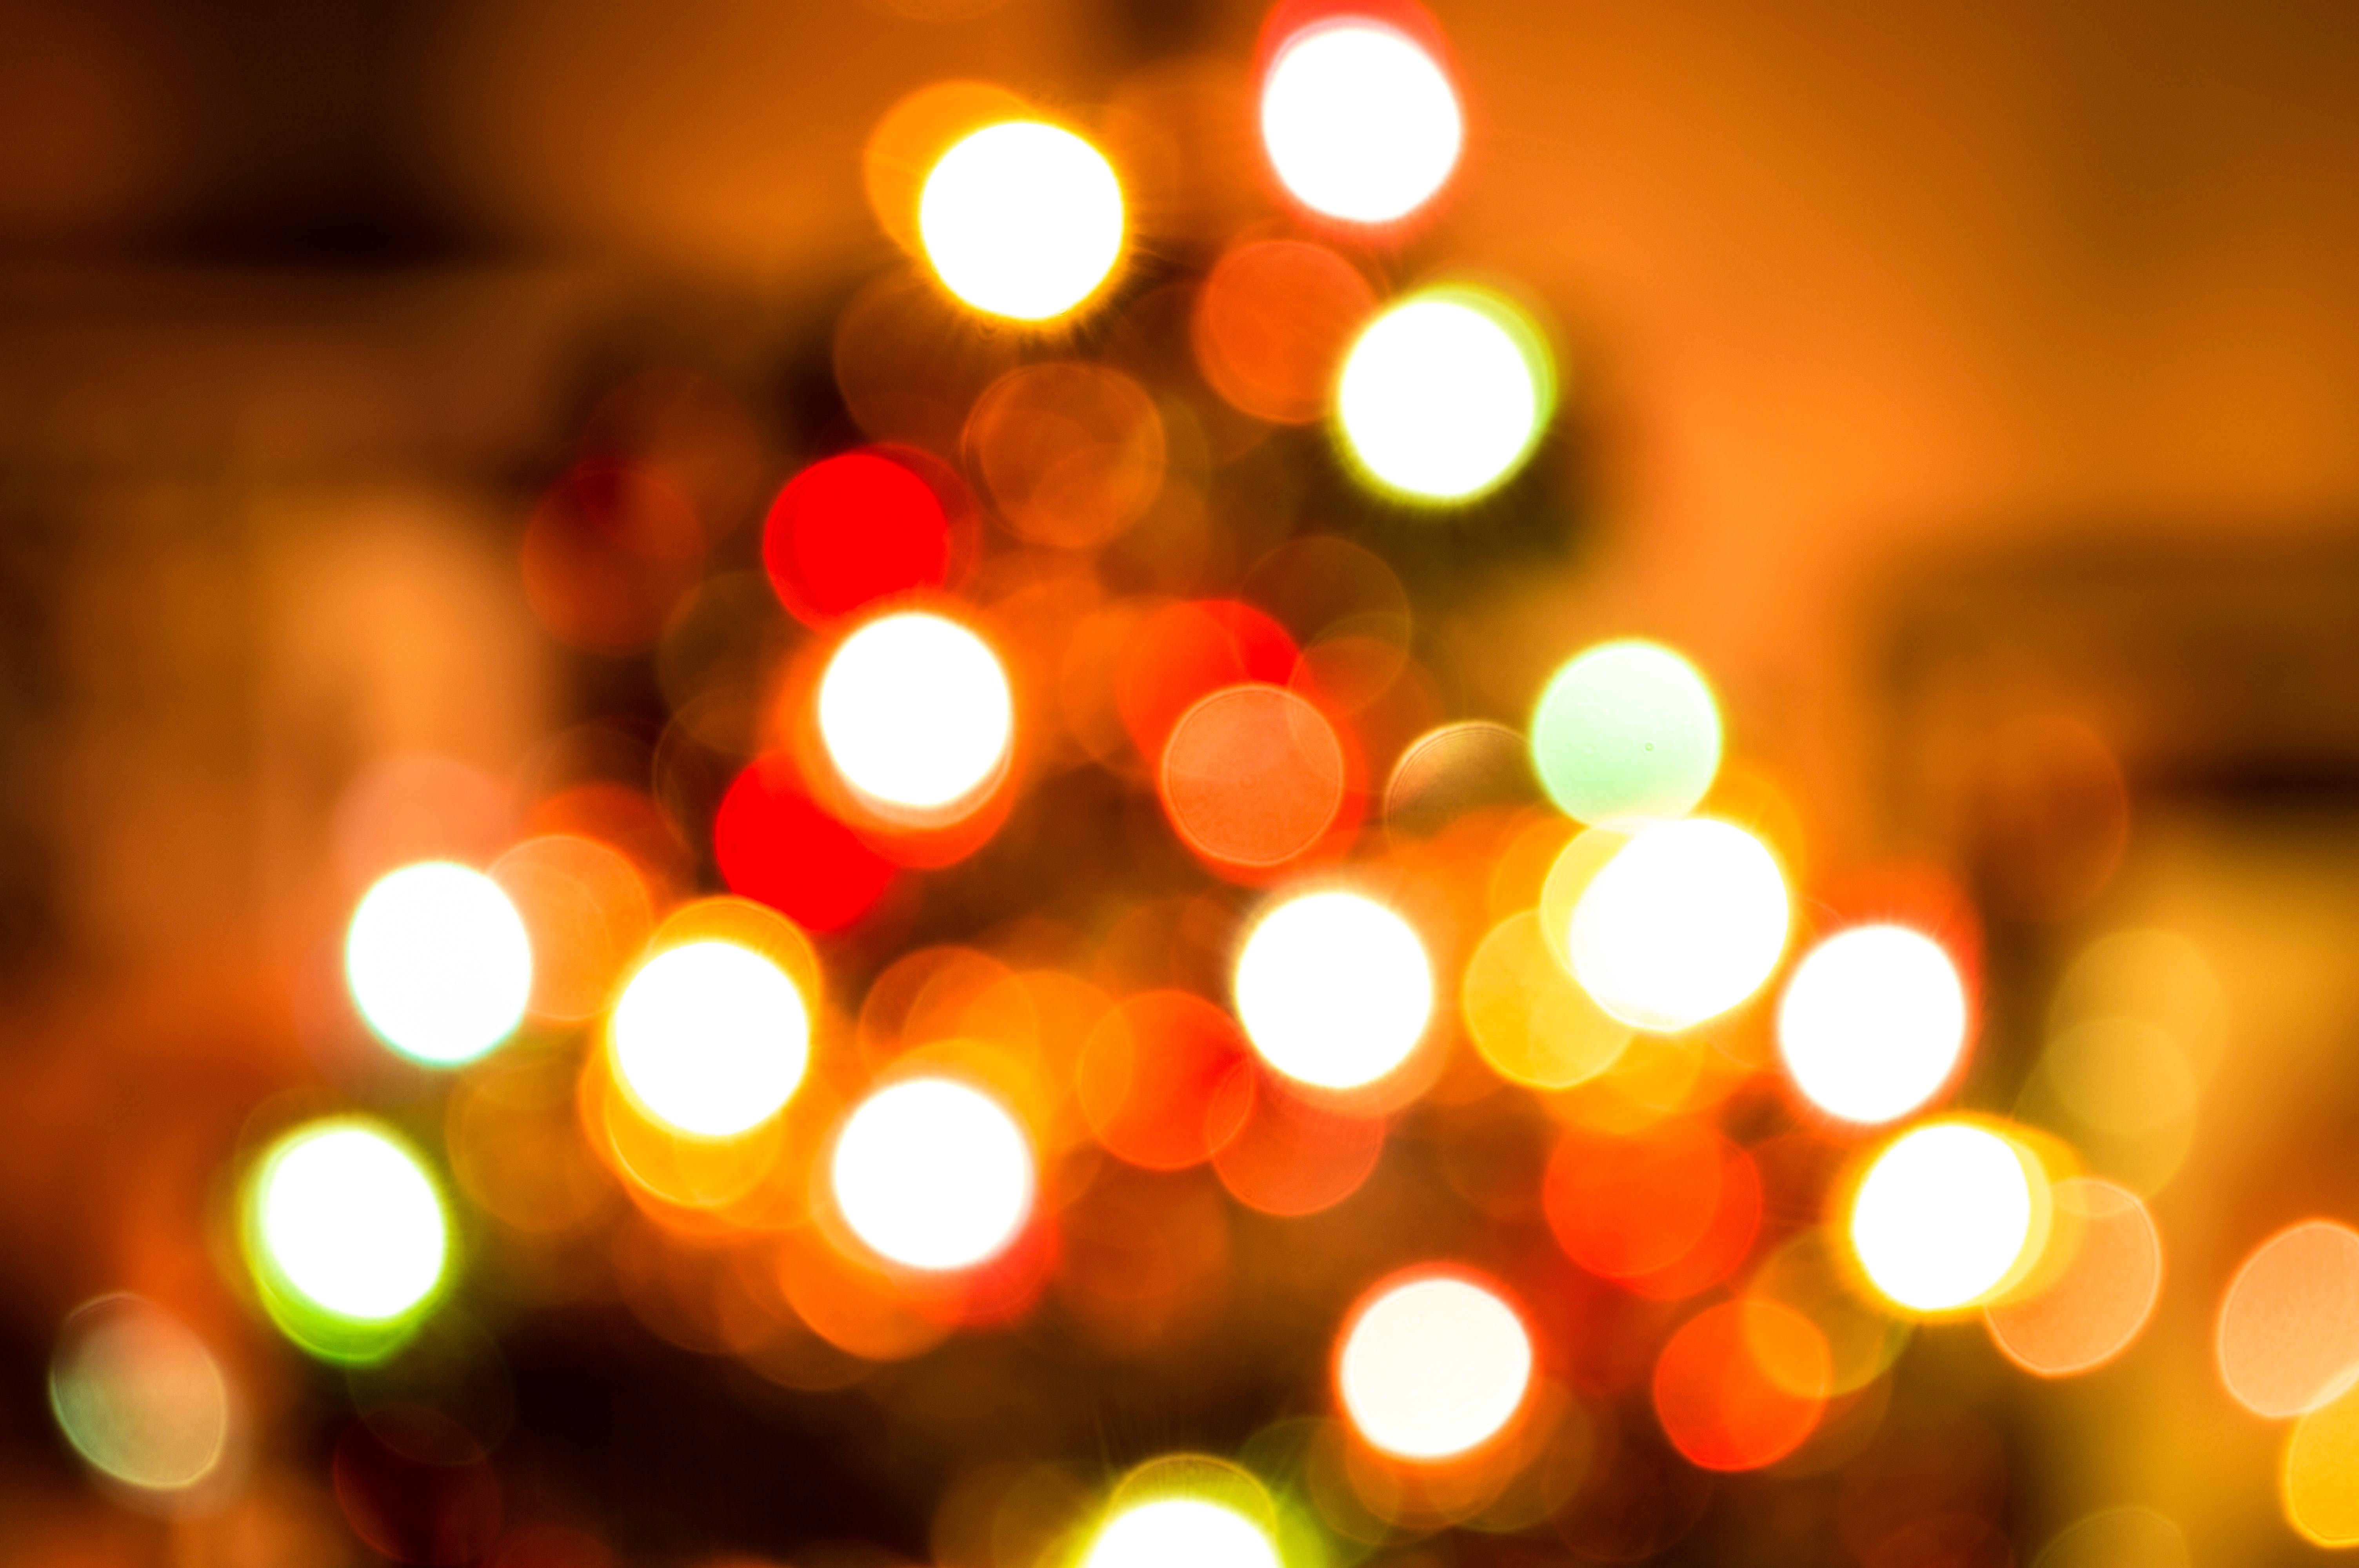 Out of Focus Photo of Lights in Bokeh Photography